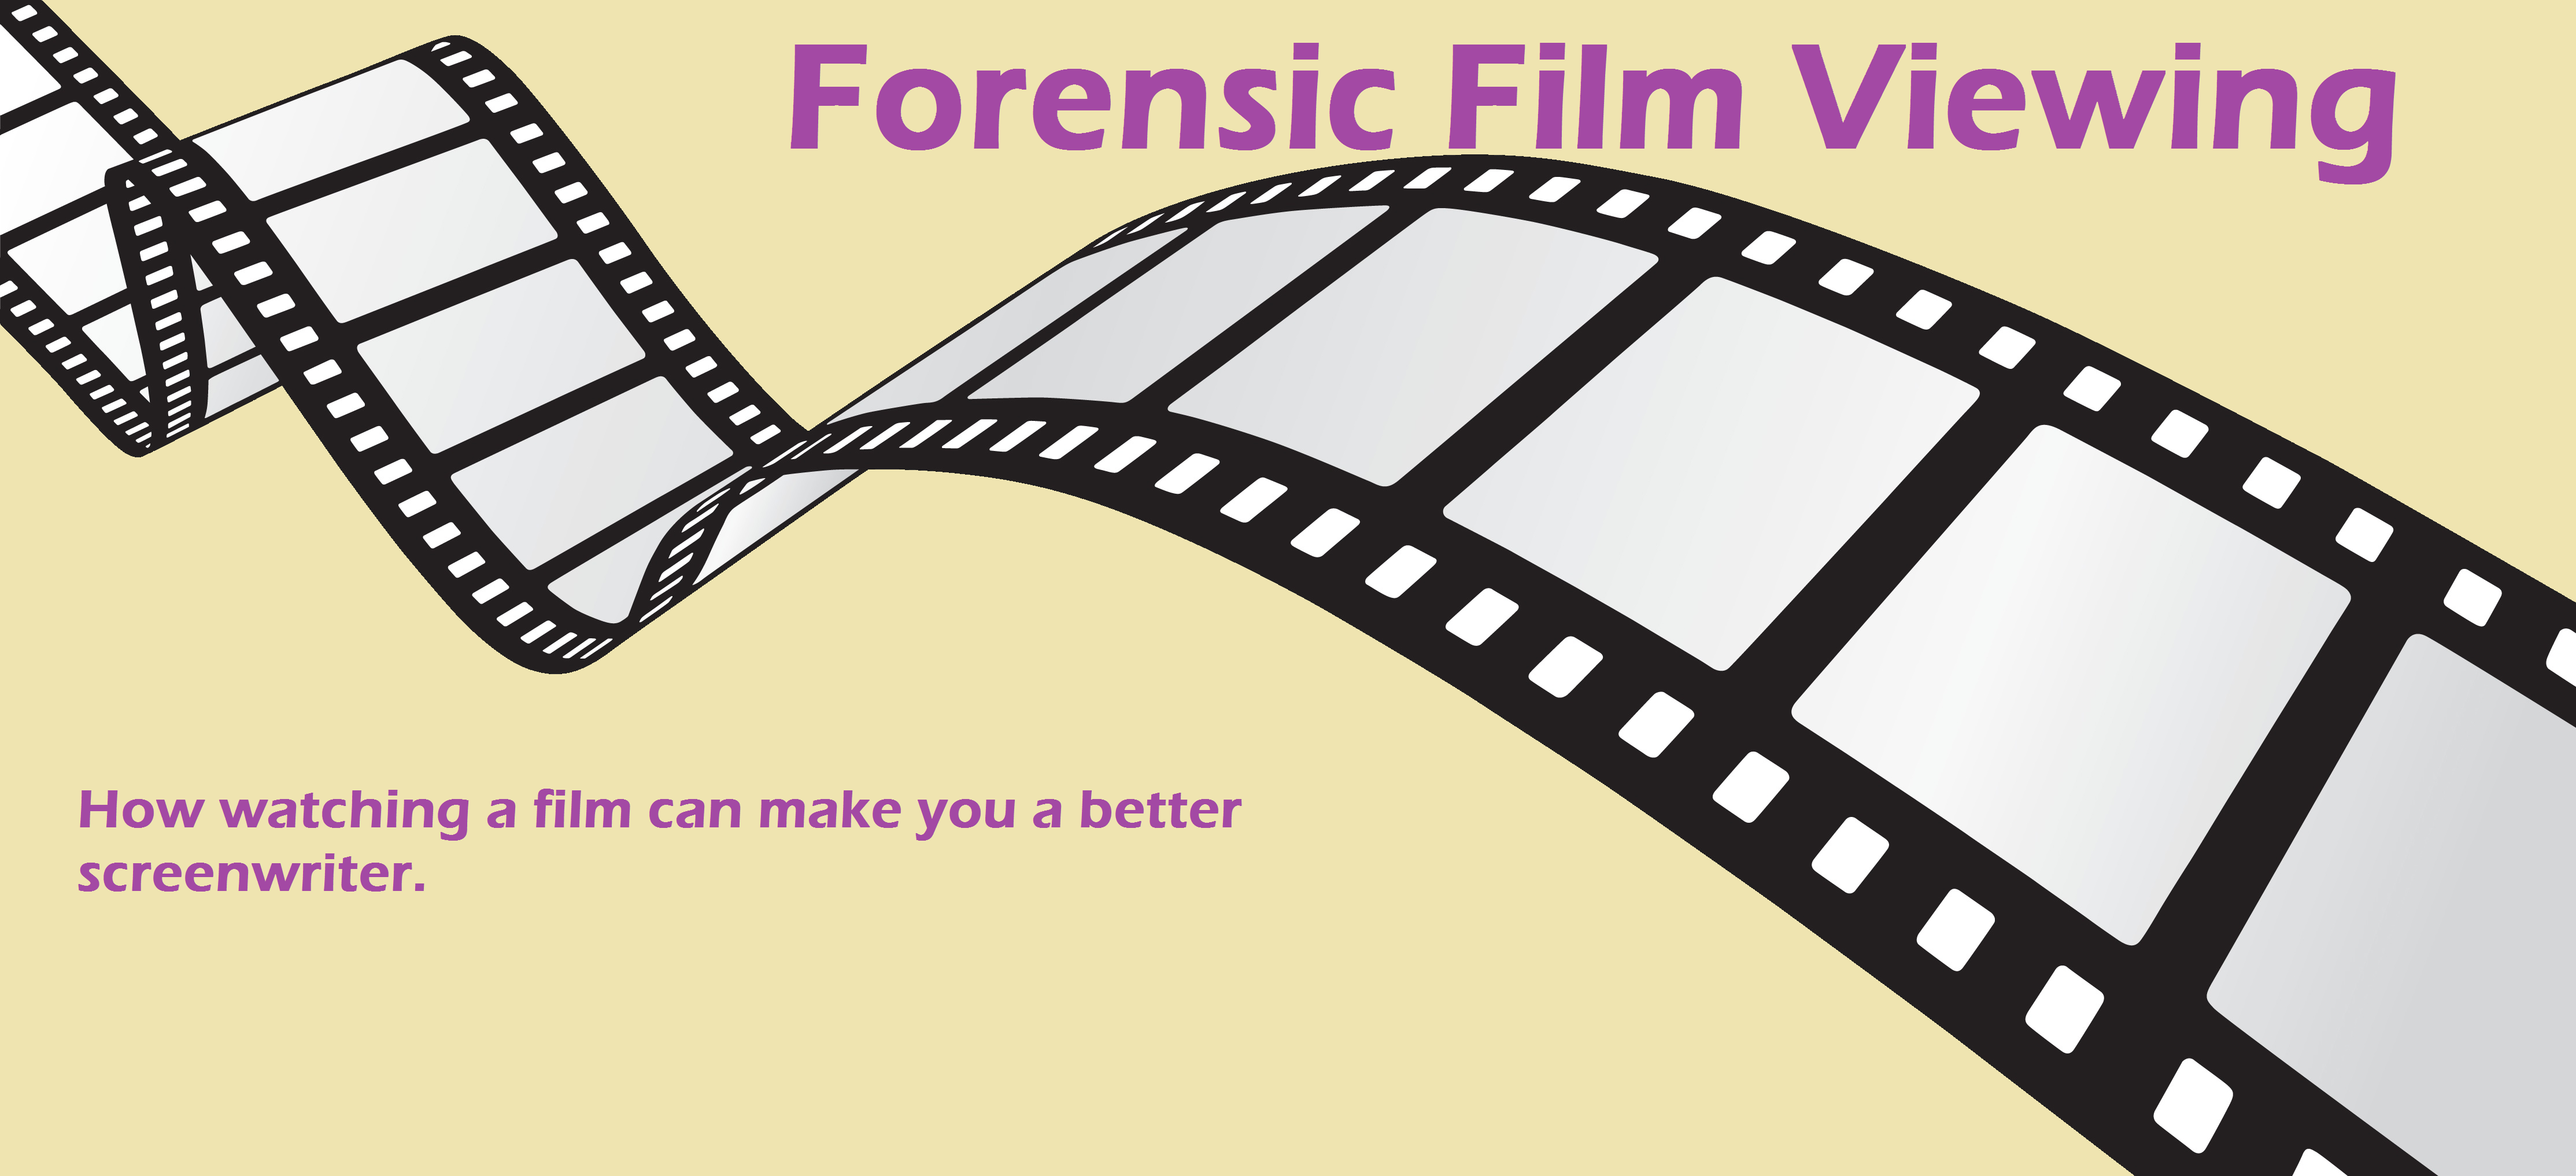 How to learn from watching forcensic film